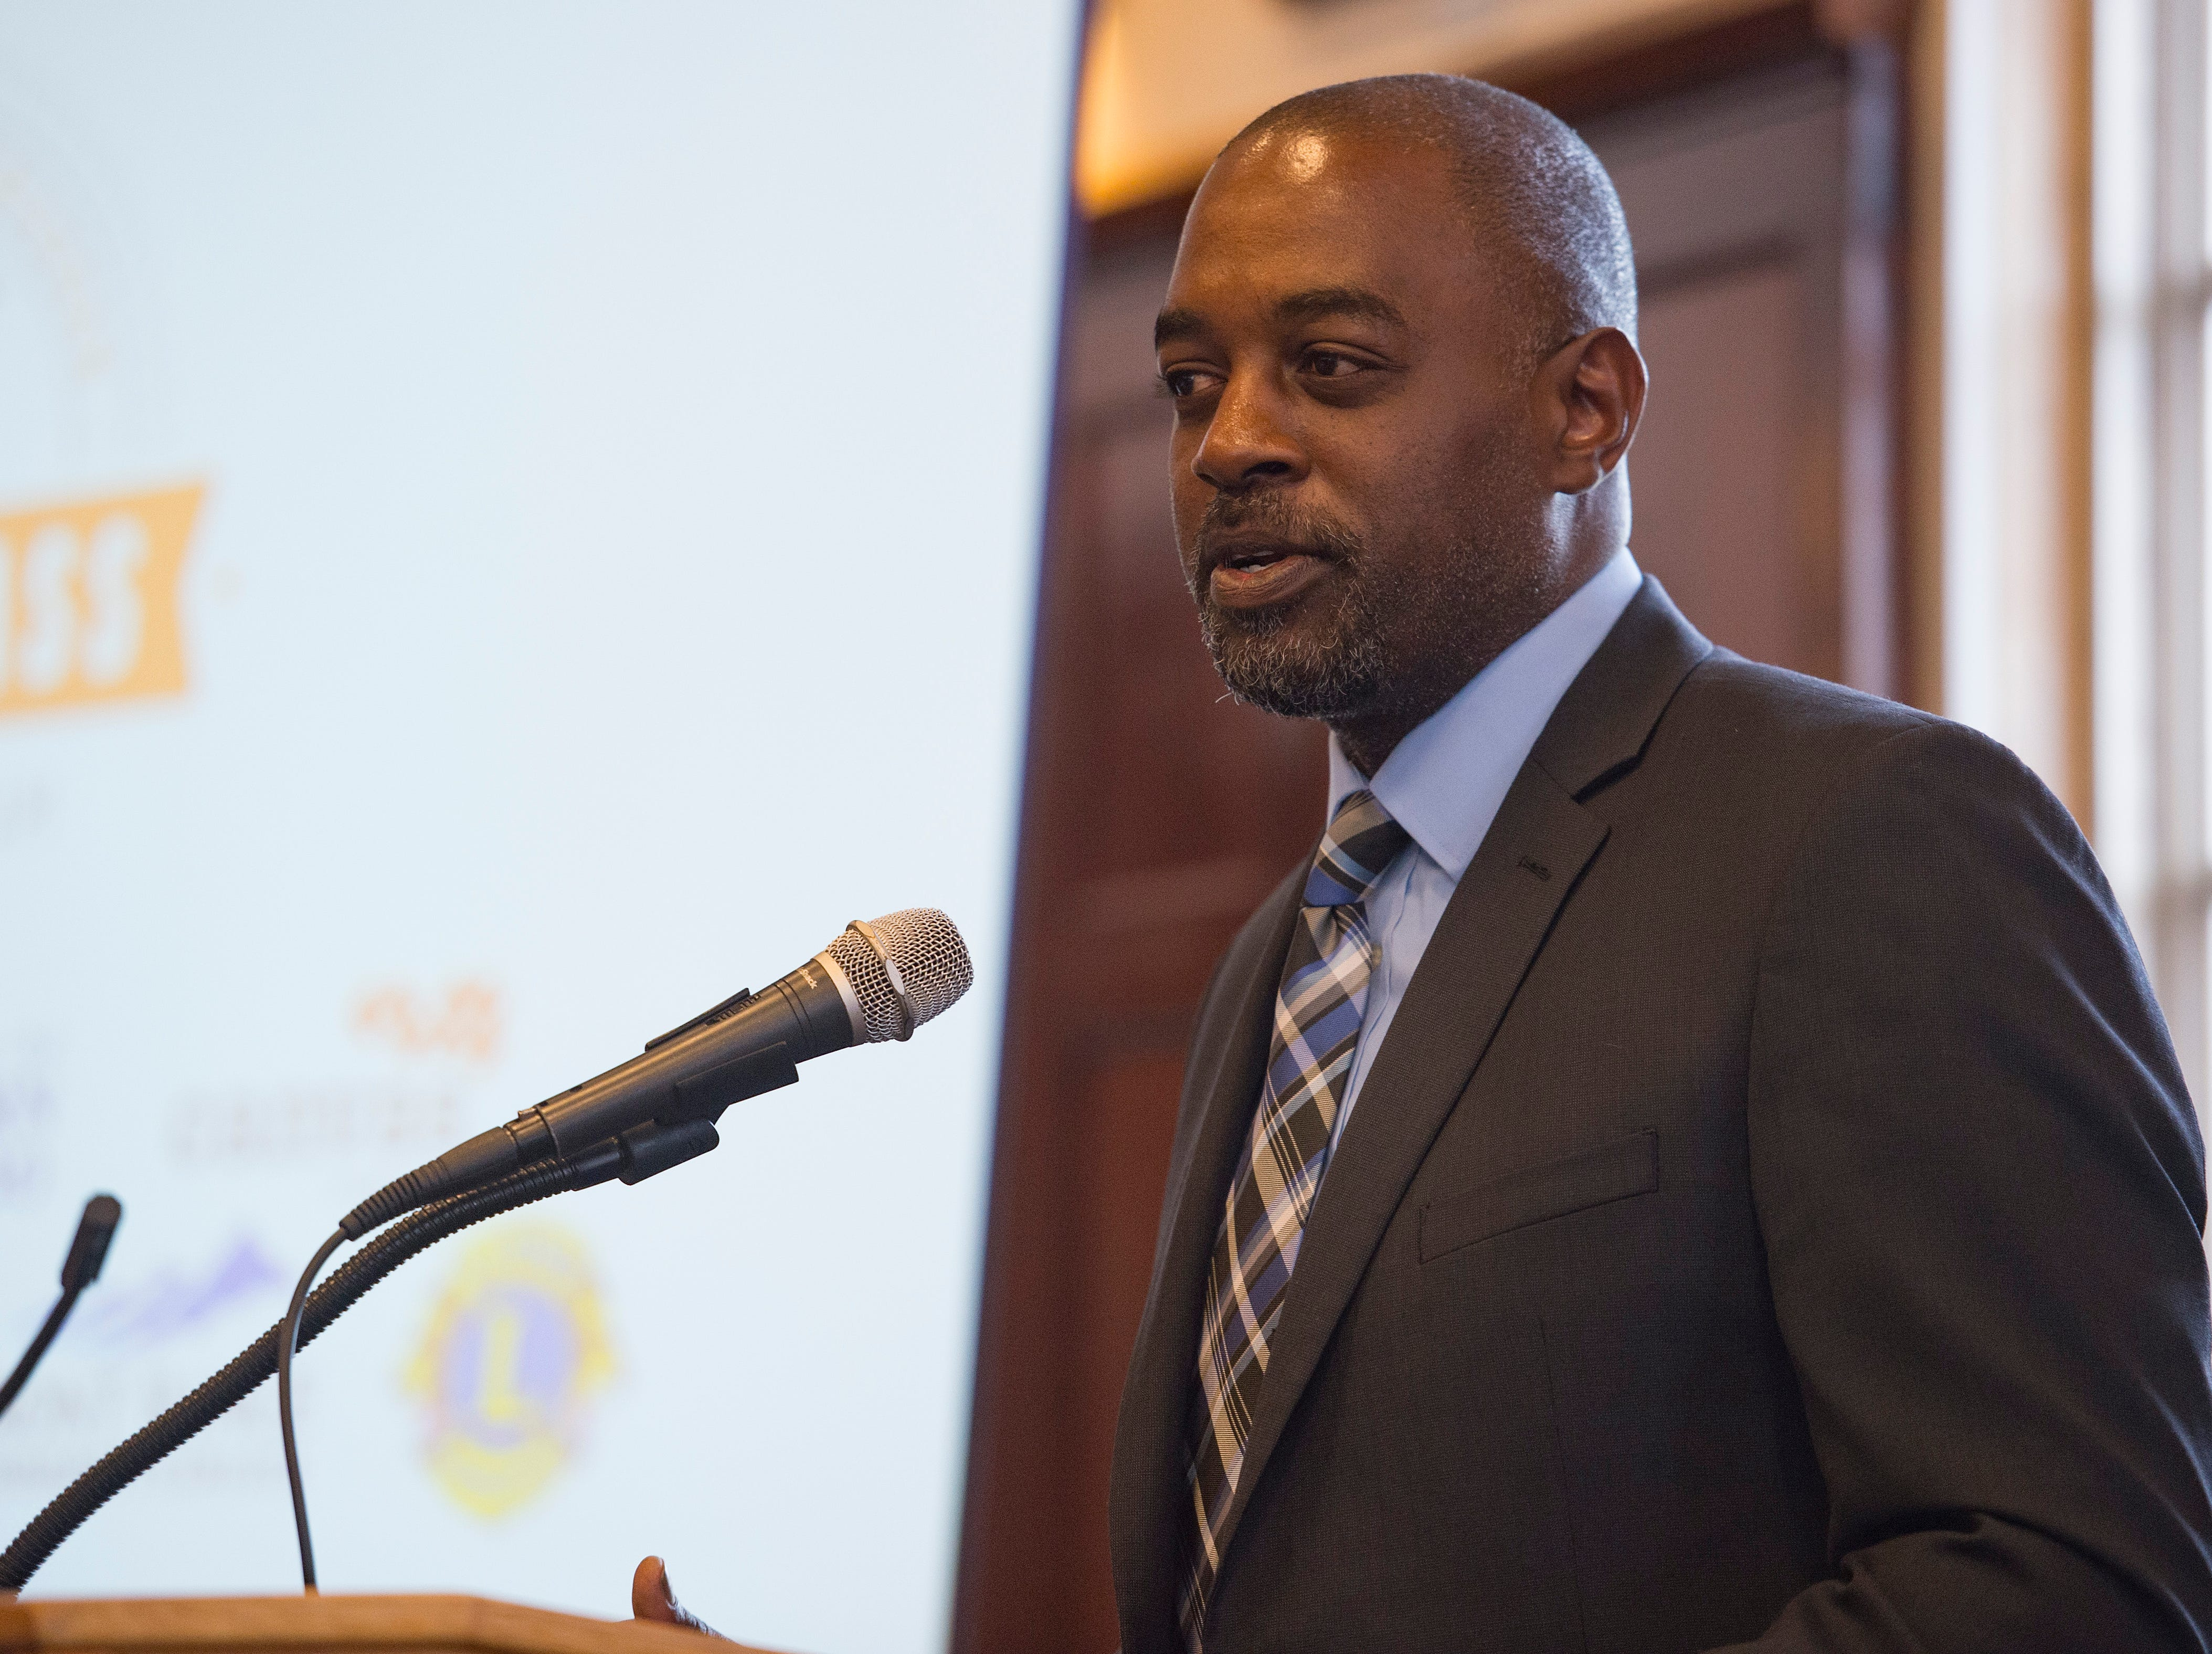 Malcom Johnson of Canvas Credit Union speaks during the Coloradoan's First Class banquet at the University of Northern Colorado in Greeley on Saturday, October 6, 2018. First Class is a program that supports first-generation students in Northern Colorado. The program is now in its third year and is a partnership between The Coloradoan and Aims Community College, Fort Collins Lions Club, Front Range Community College, Colorado State University, Canvas Credit Union (formerly Public Service Credit Union) and University of Northern Colorado.